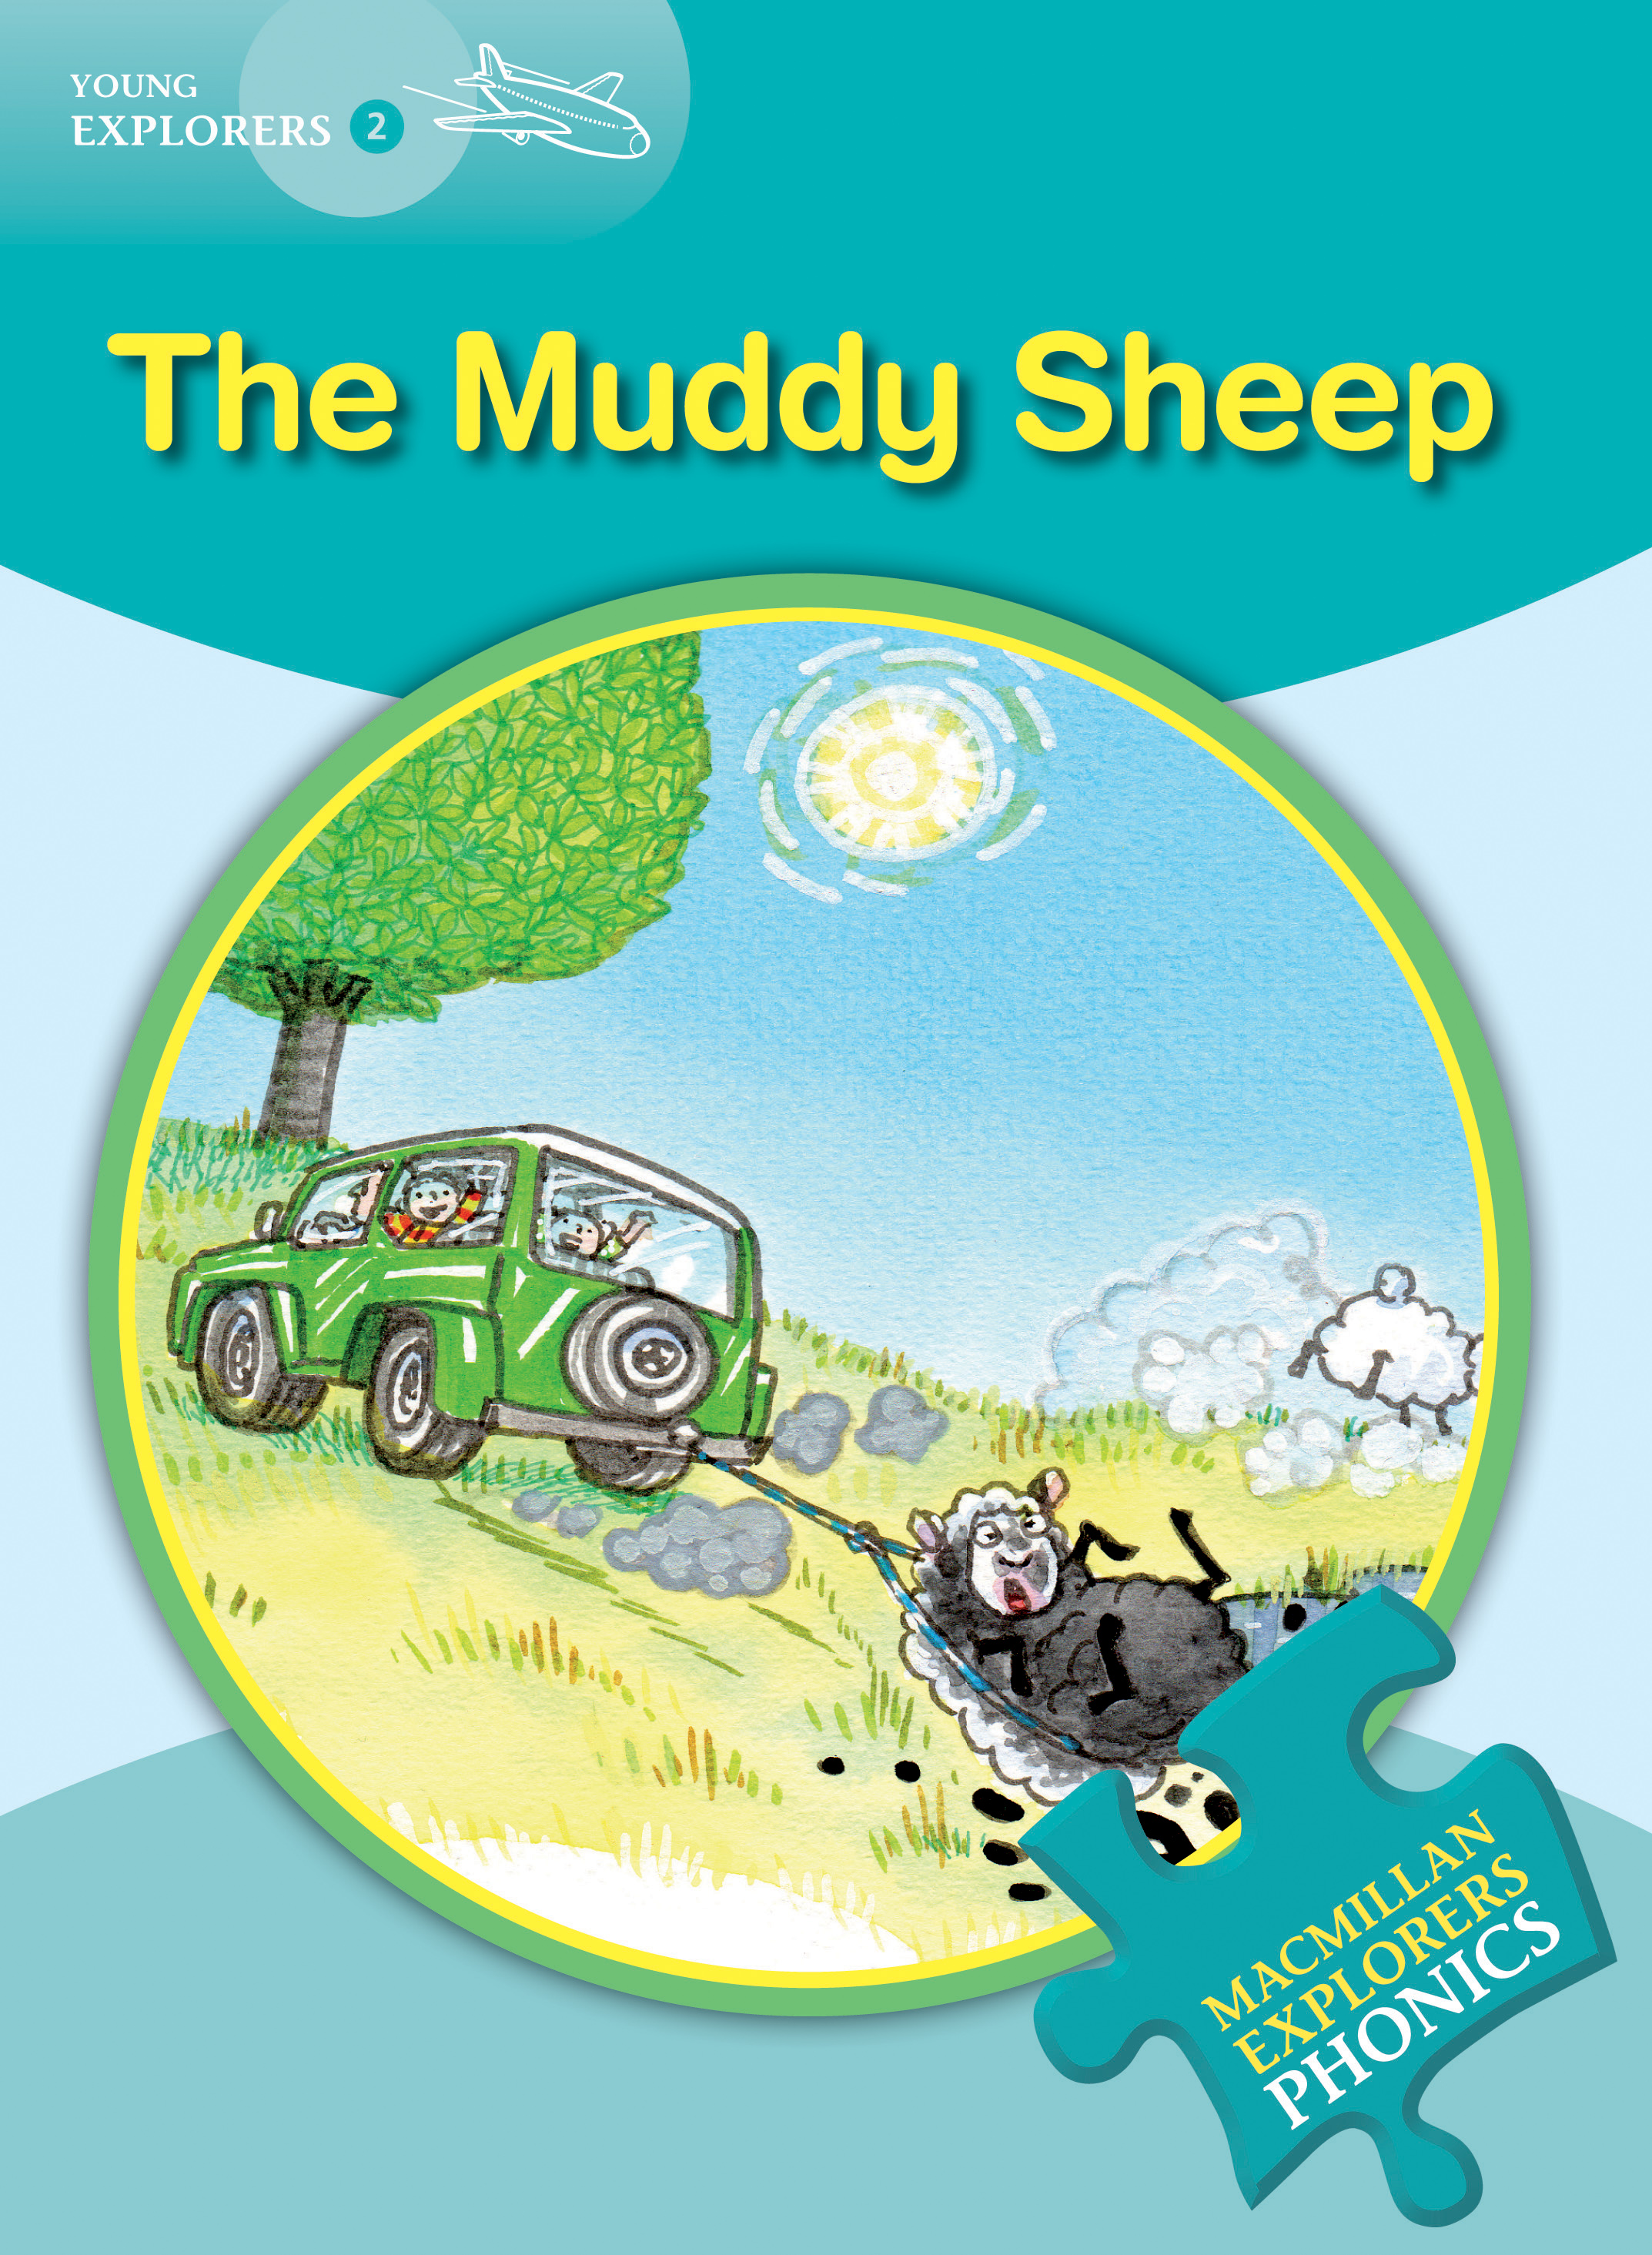 Young Explorers 2: The Muddy Sheep